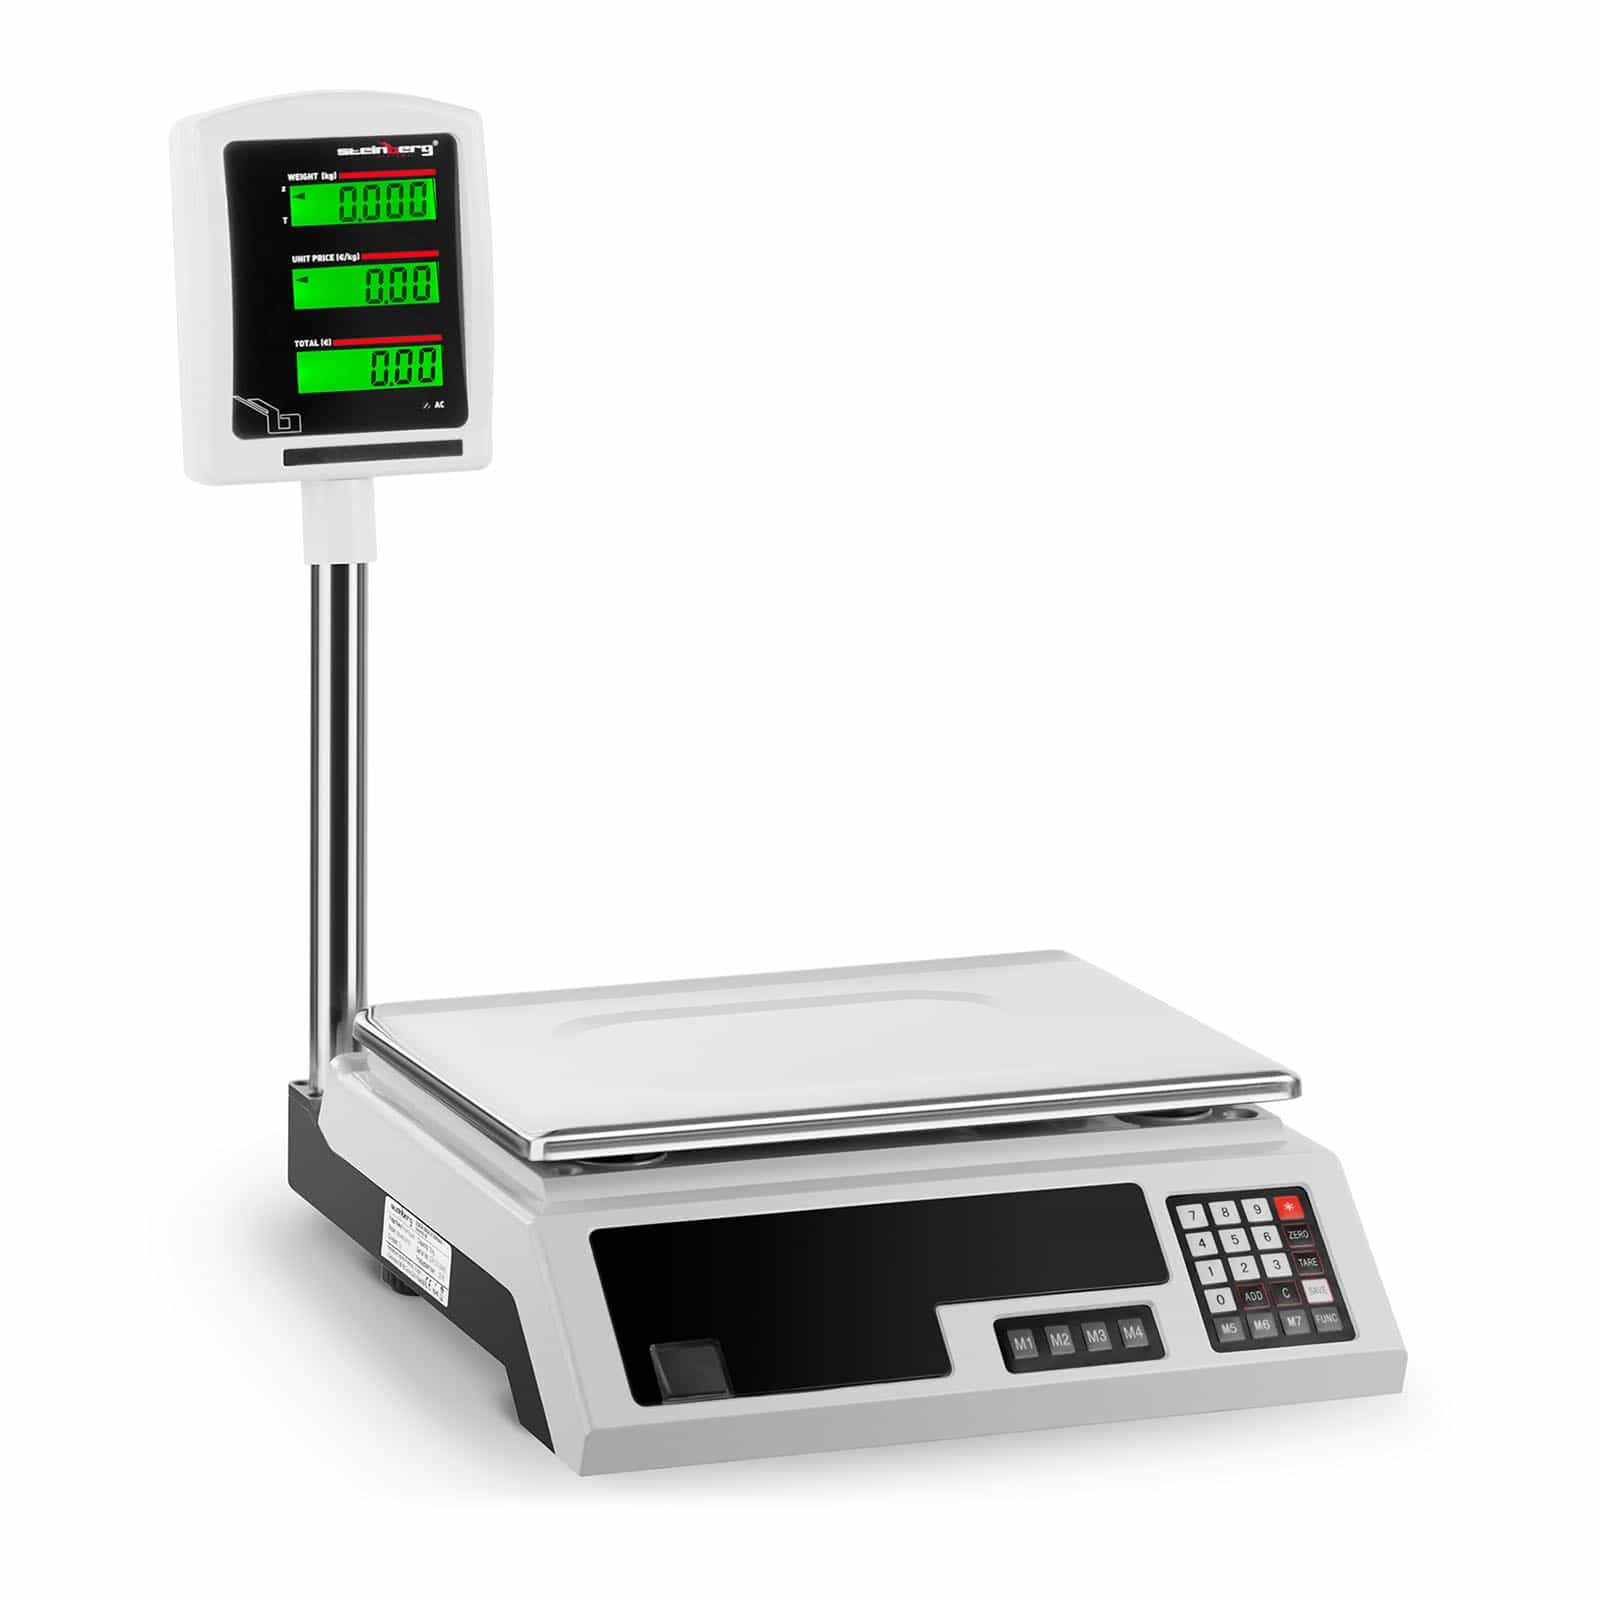 Price Calculating Scales